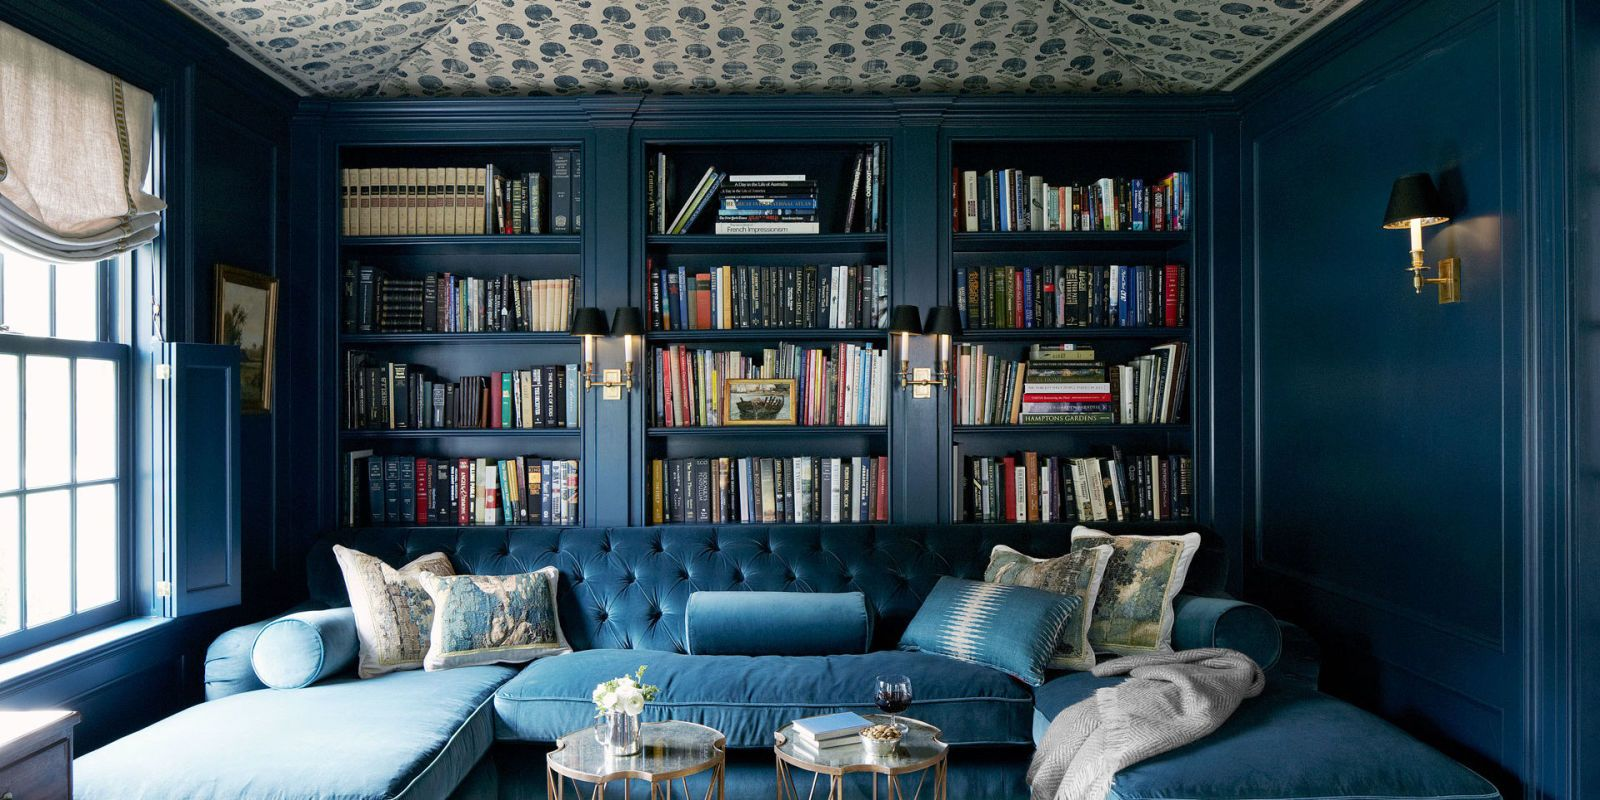 blue velvet tufted sofa & Home Library Design Ideas - Pictures of Home Library Decor